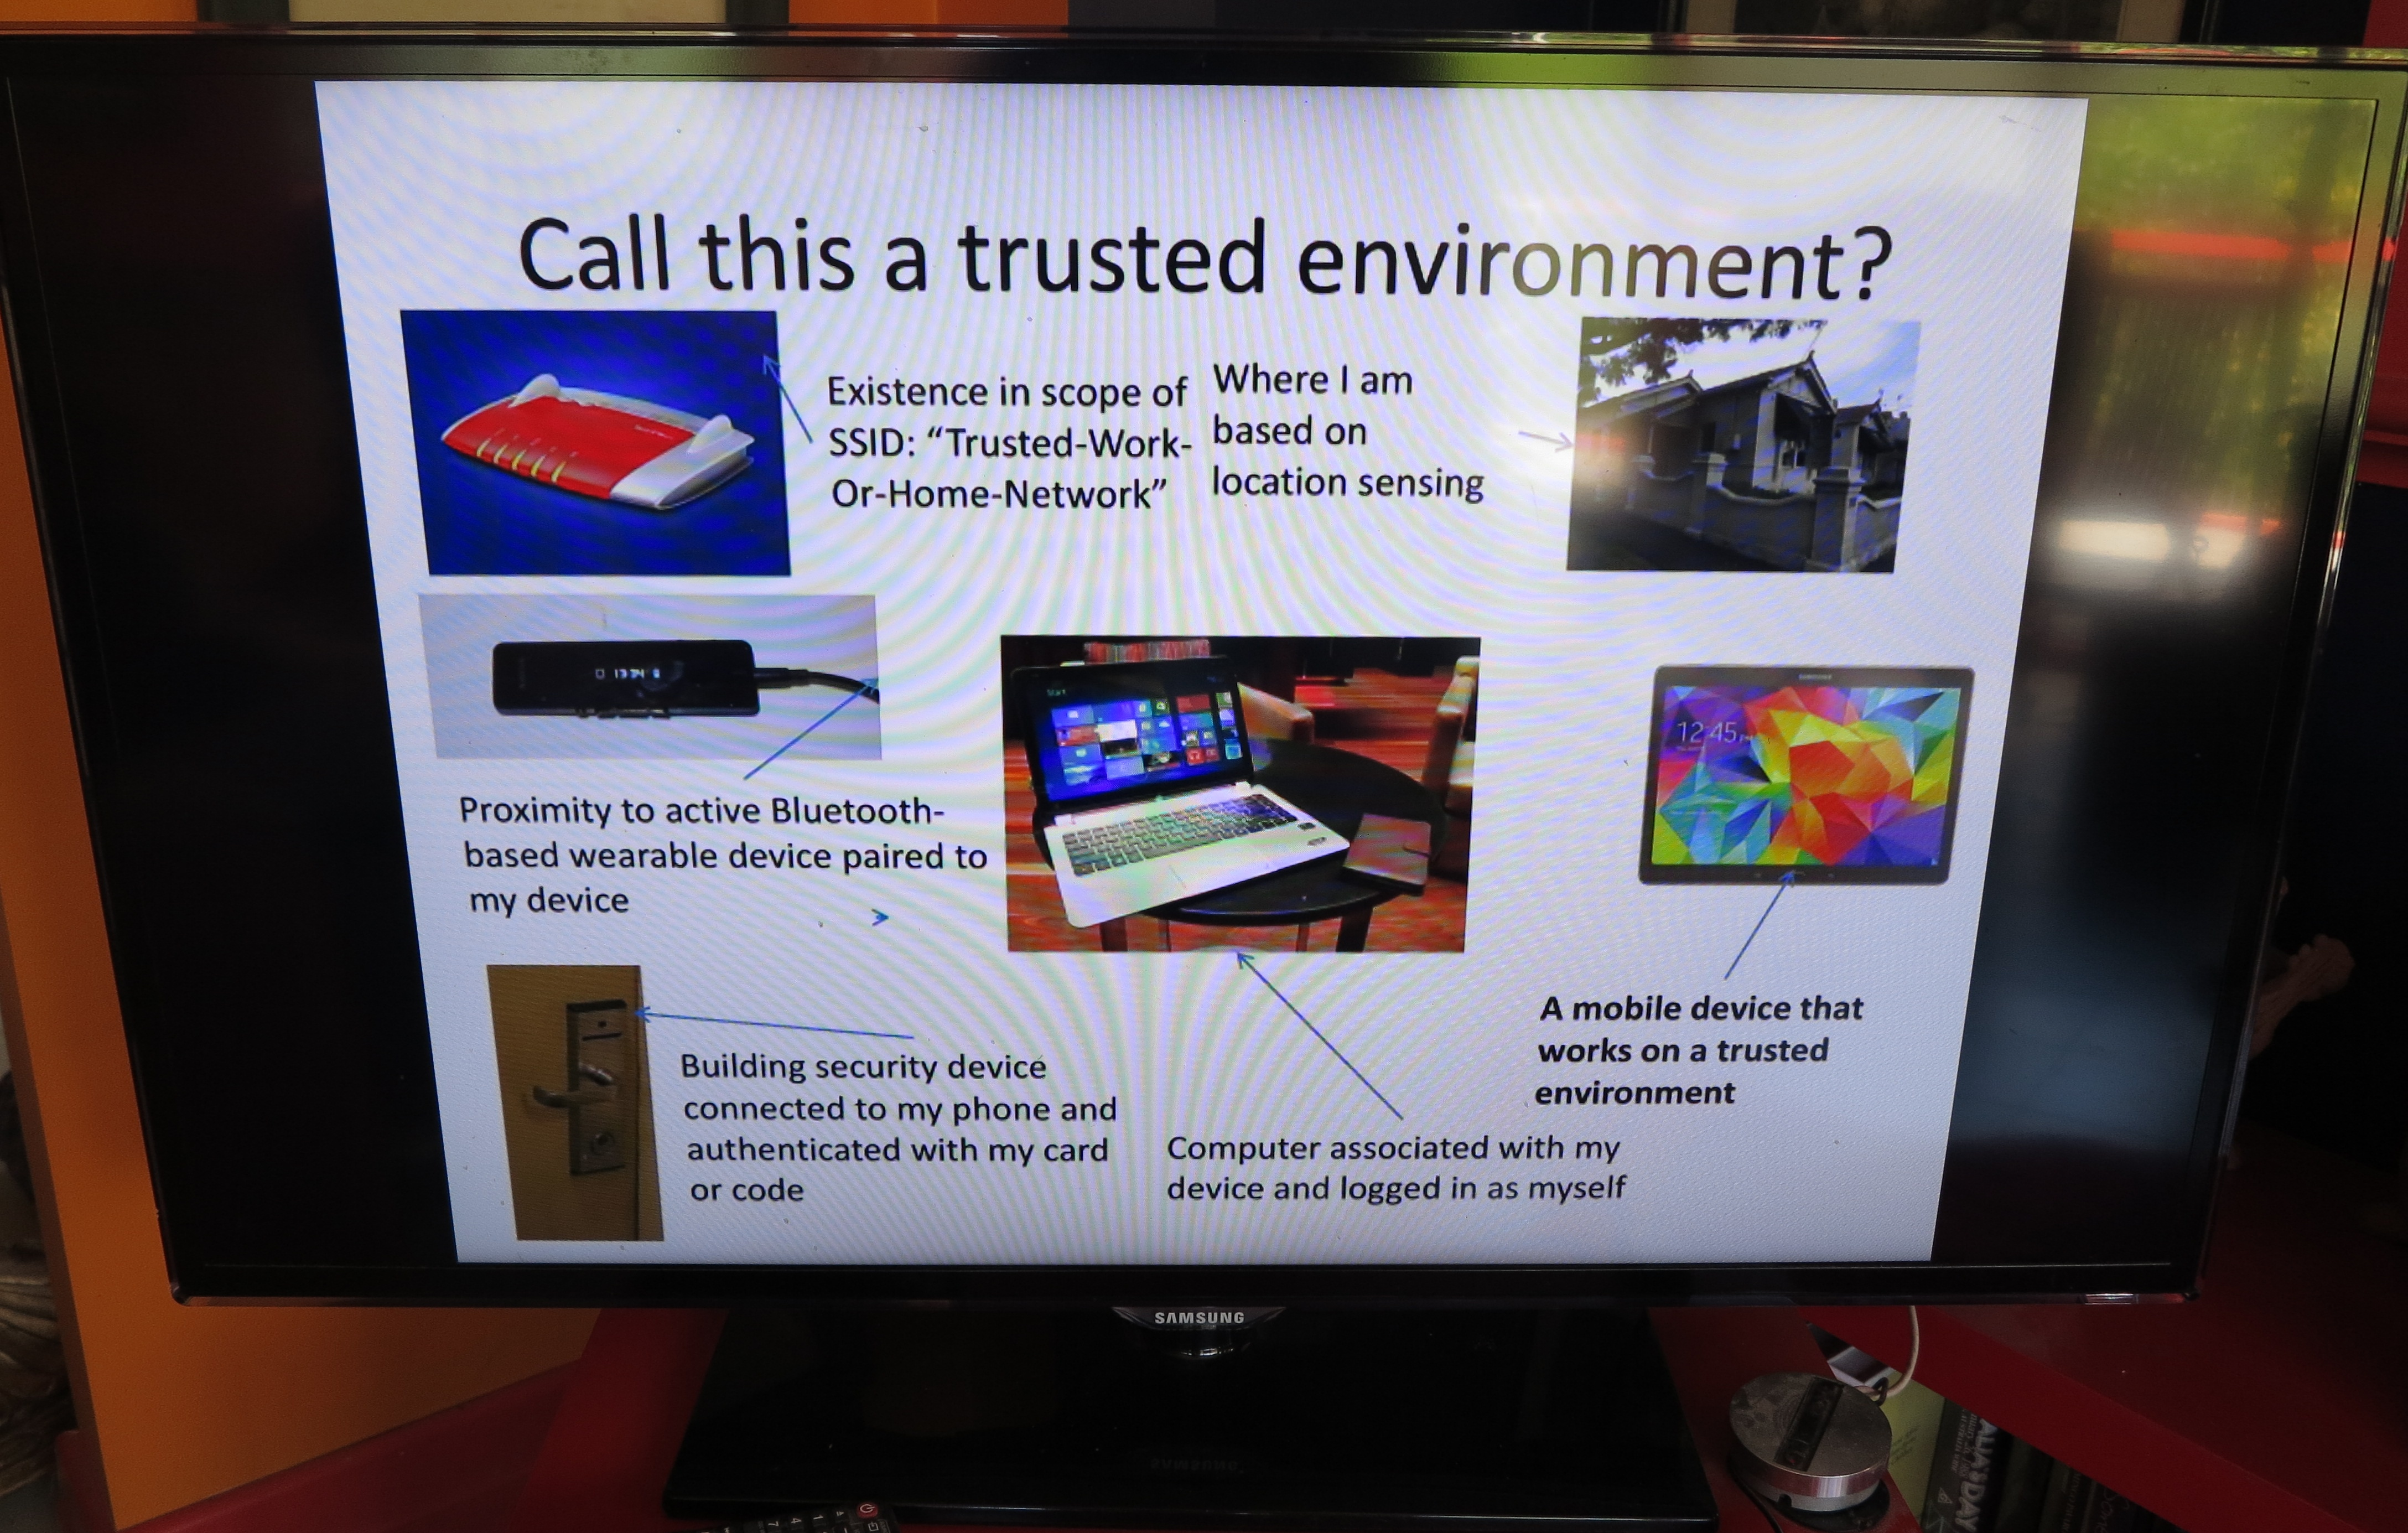 Creating your own electronic signage for your organisation